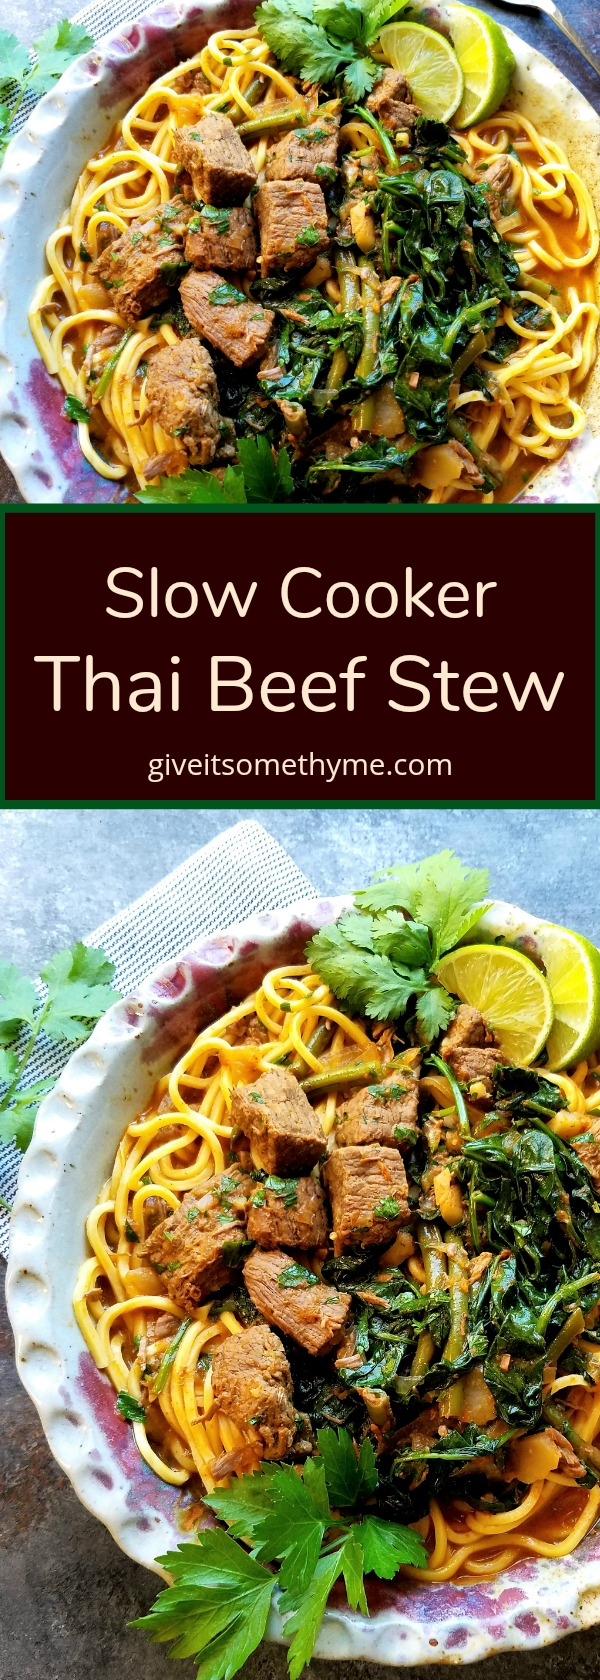 Slow Cooker Thai Beef Stew - Give it Some Thyme